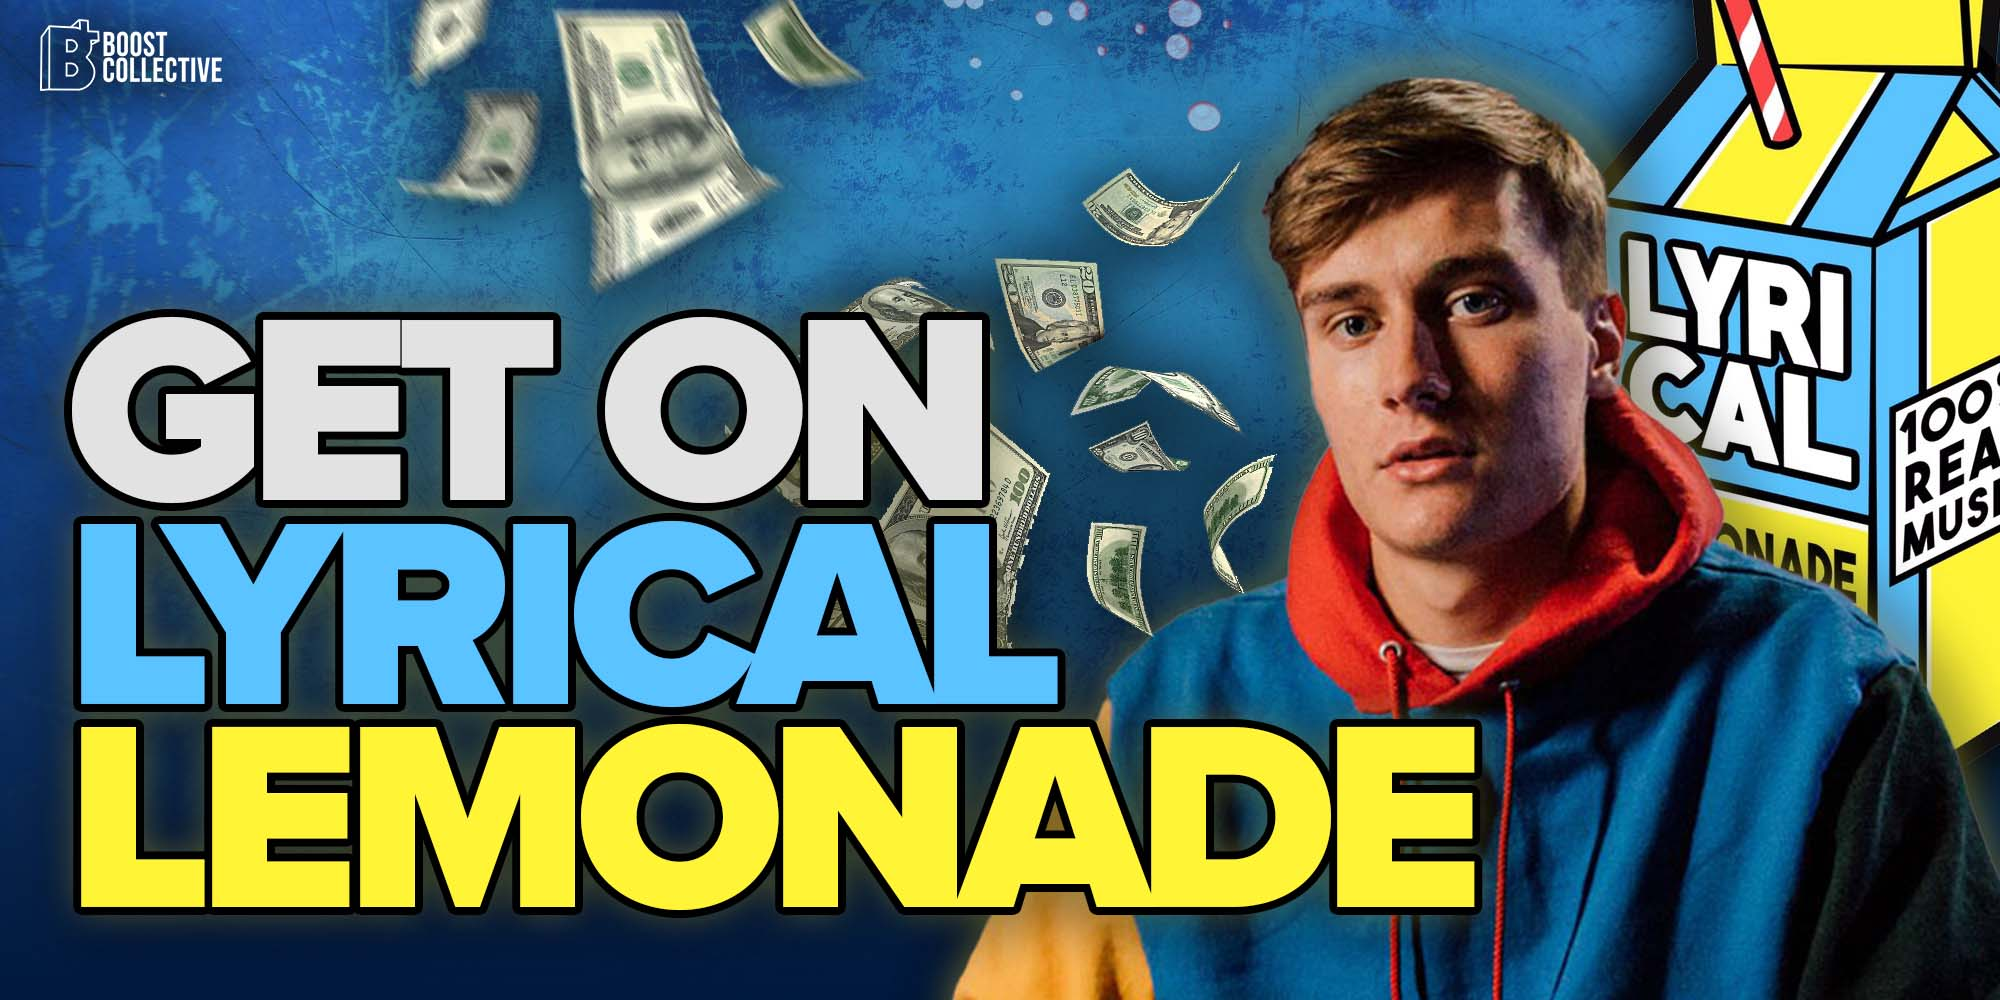 How To Get On Lyrical Lemonade (The Right Way)